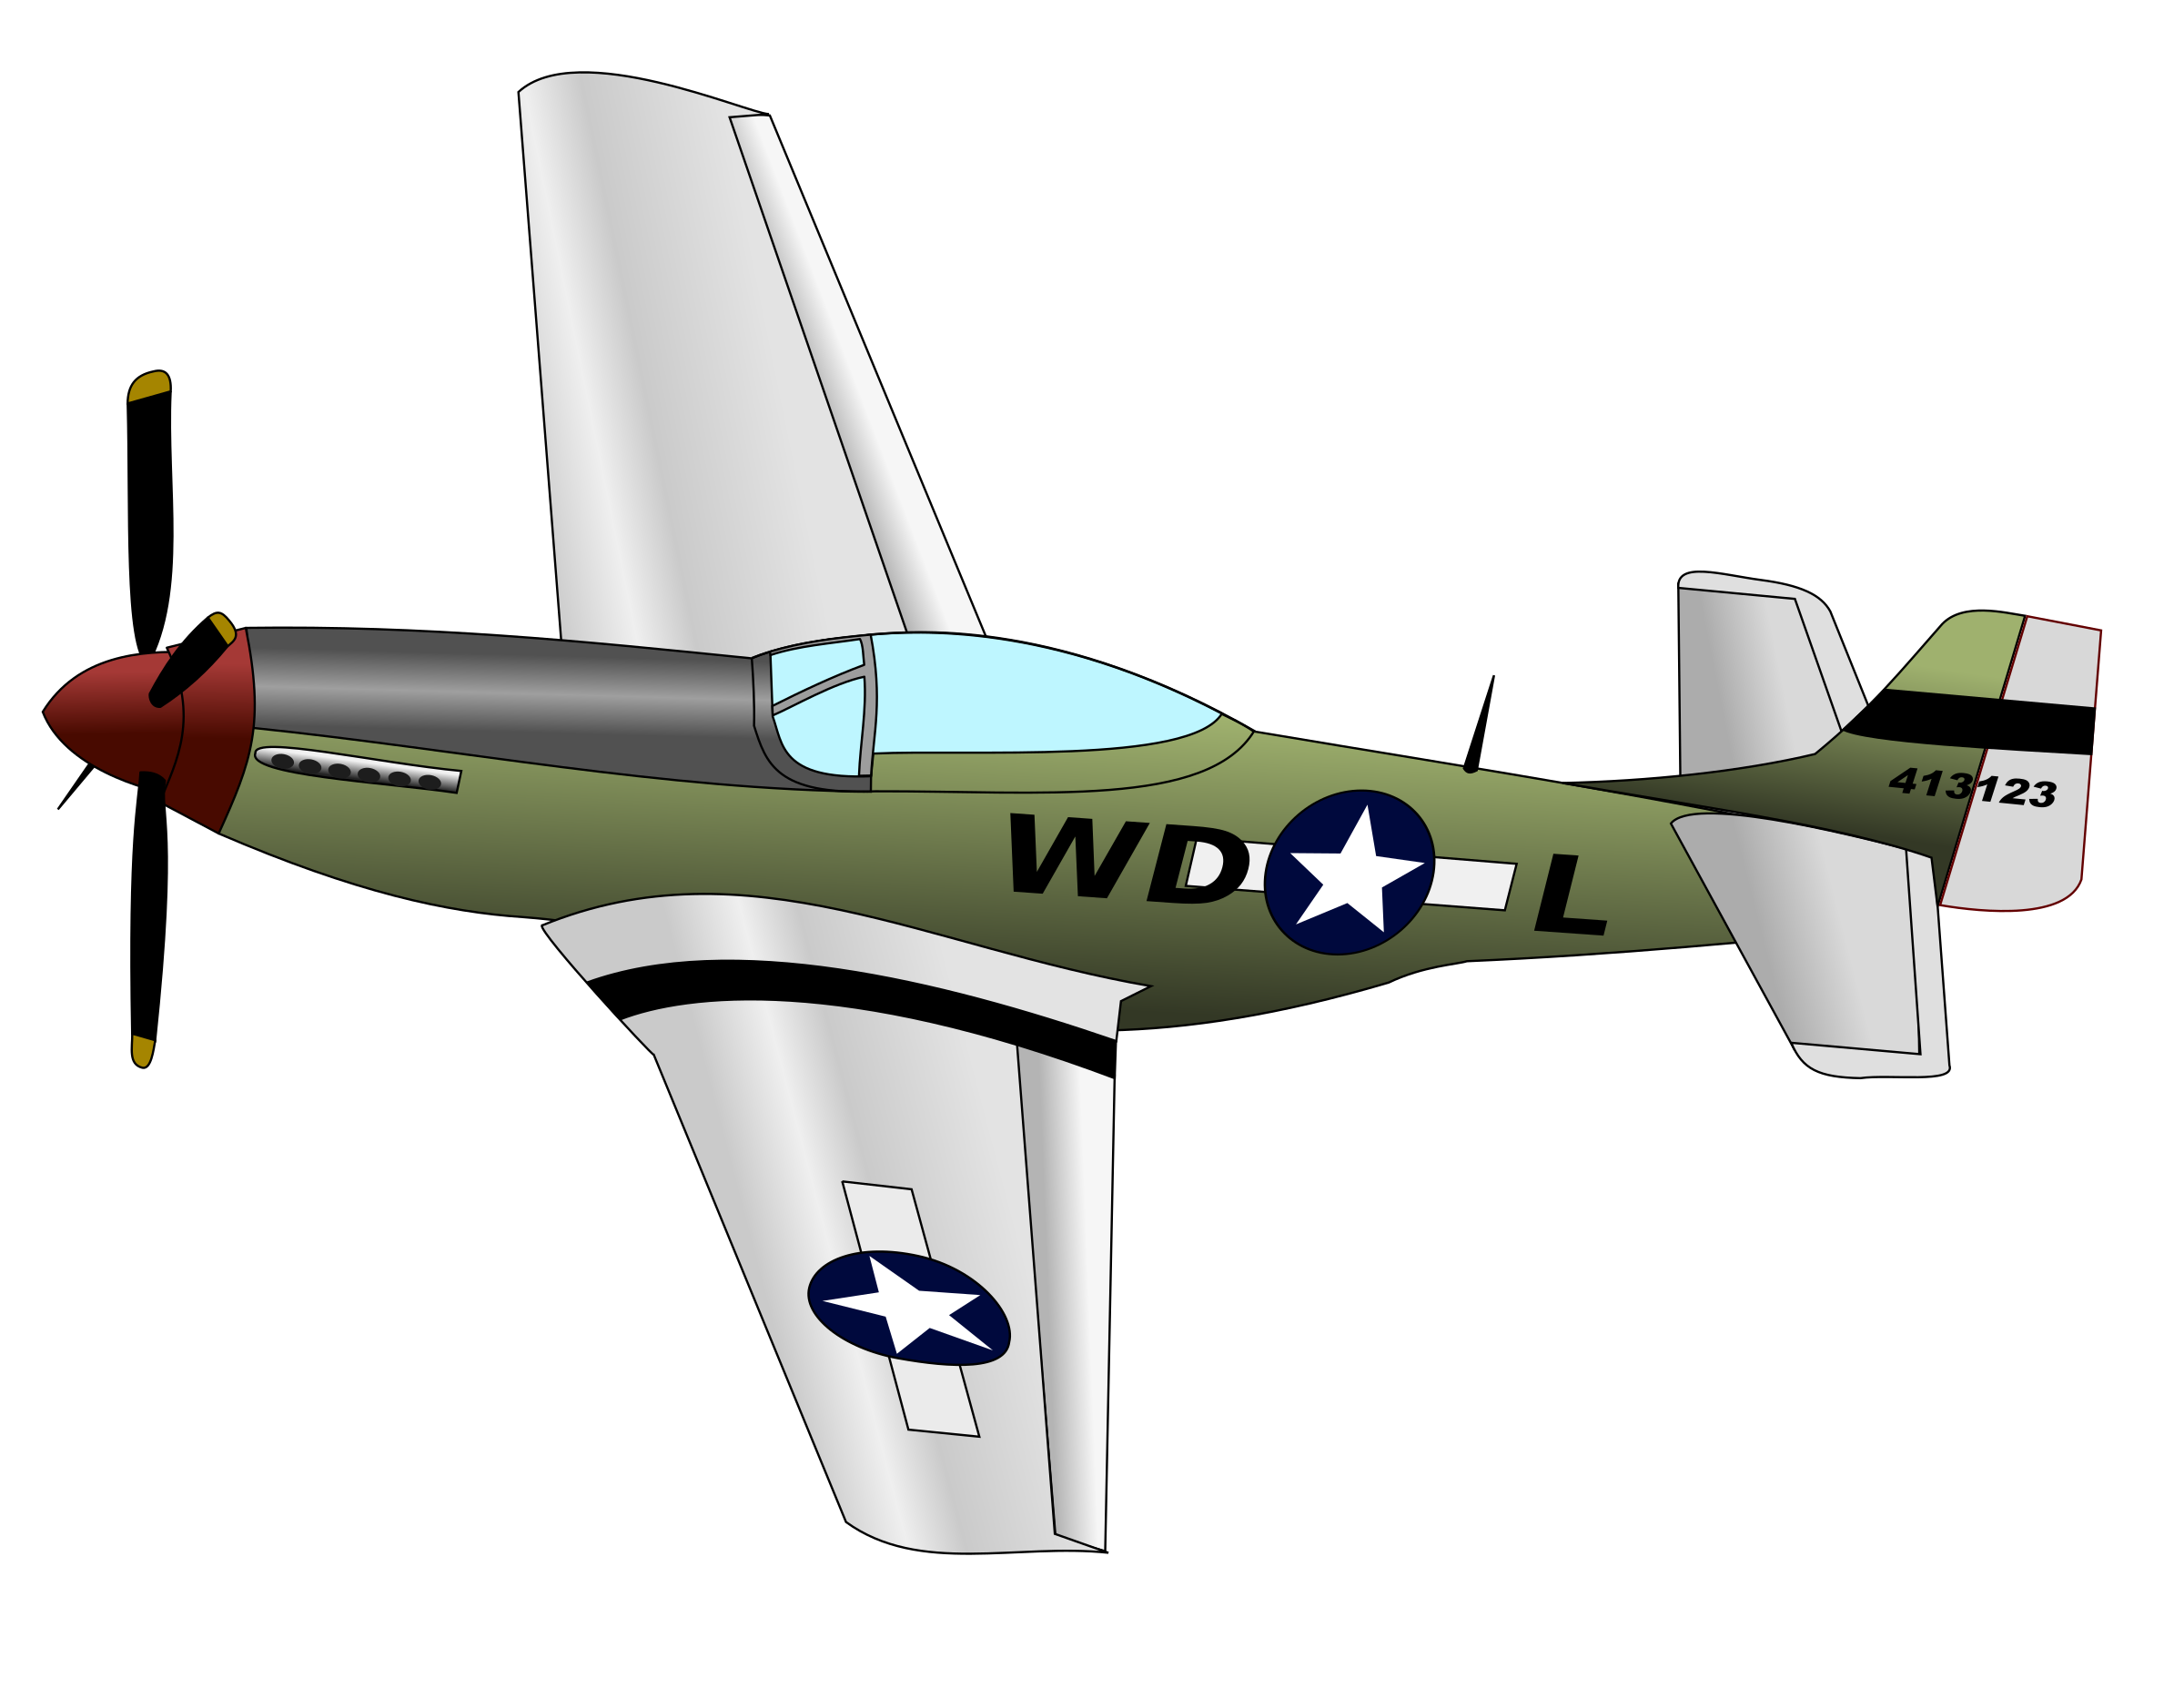 P51 Mustang by permafrost91